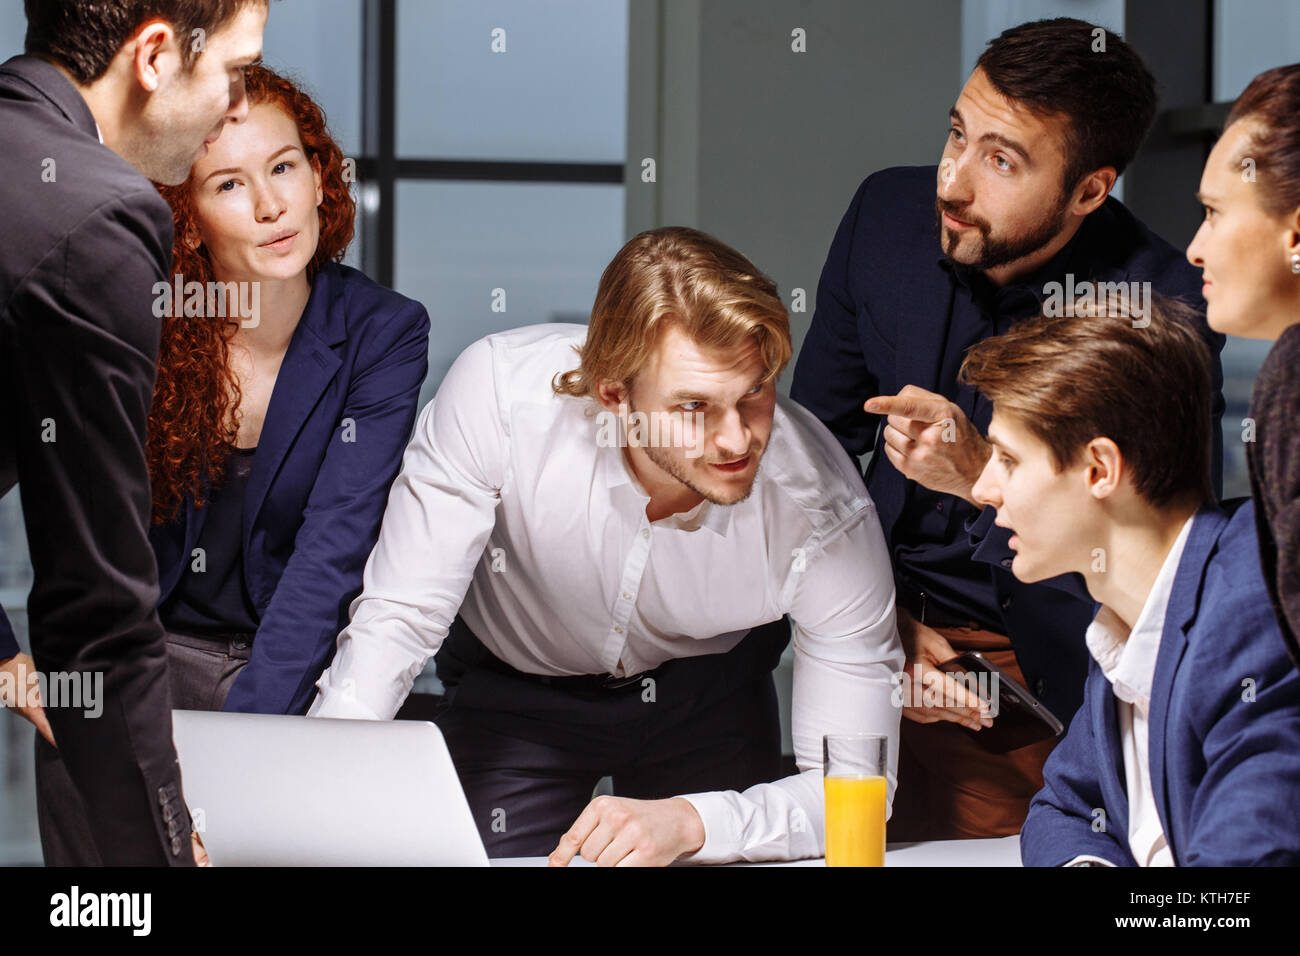 Smiling Female And Handsome Male Co-Workers Sitting At Table, Looking At Laptop - Stock Image